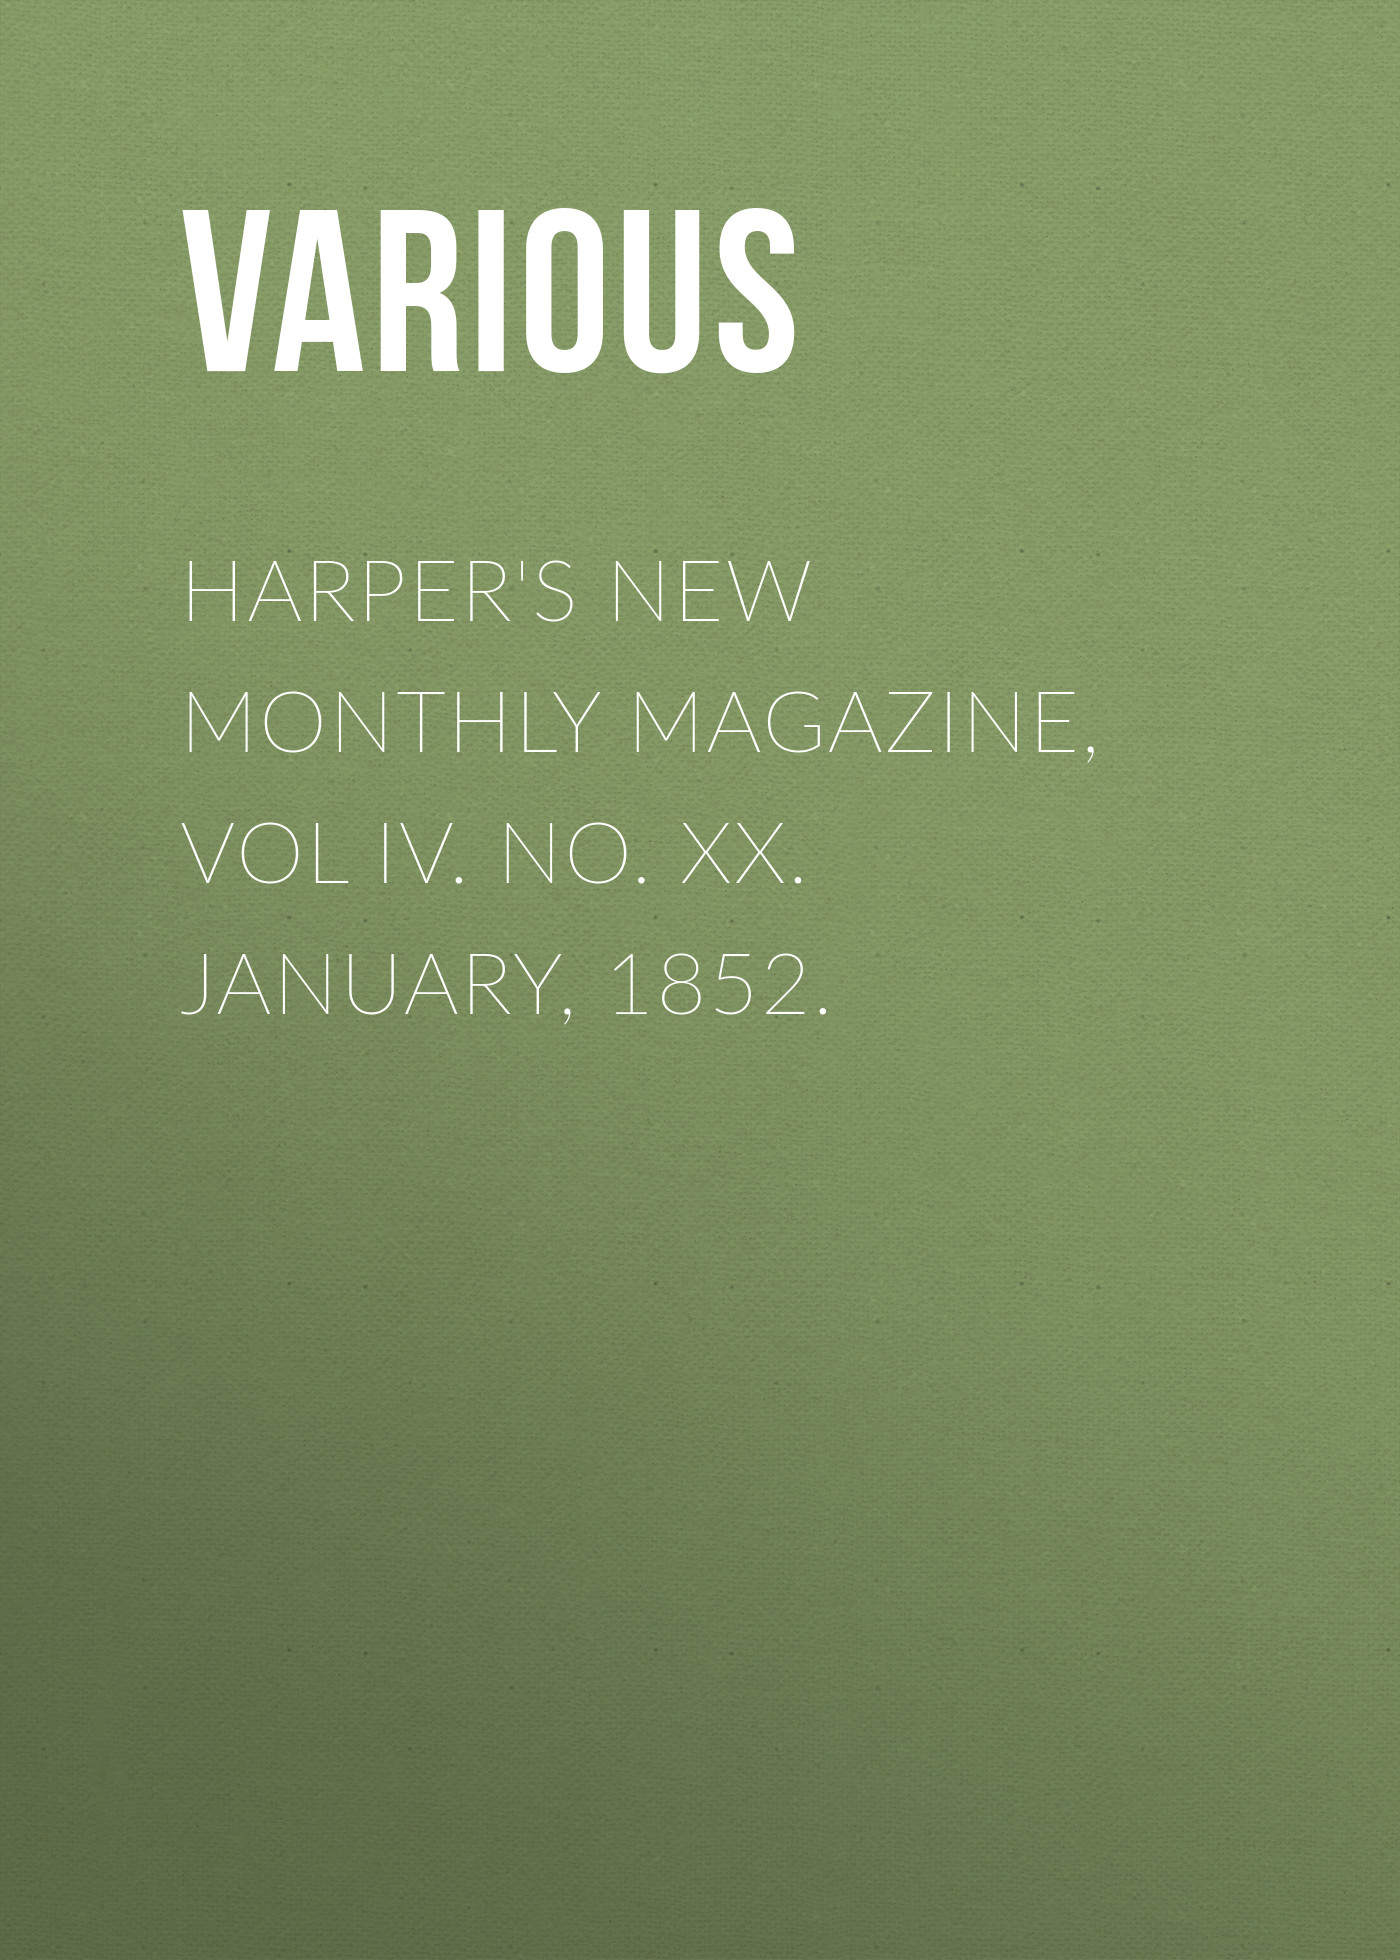 Various Harper's New Monthly Magazine, Vol IV. No. XX. January, 1852. various harper s new monthly magazine vol iv no xx january 1852